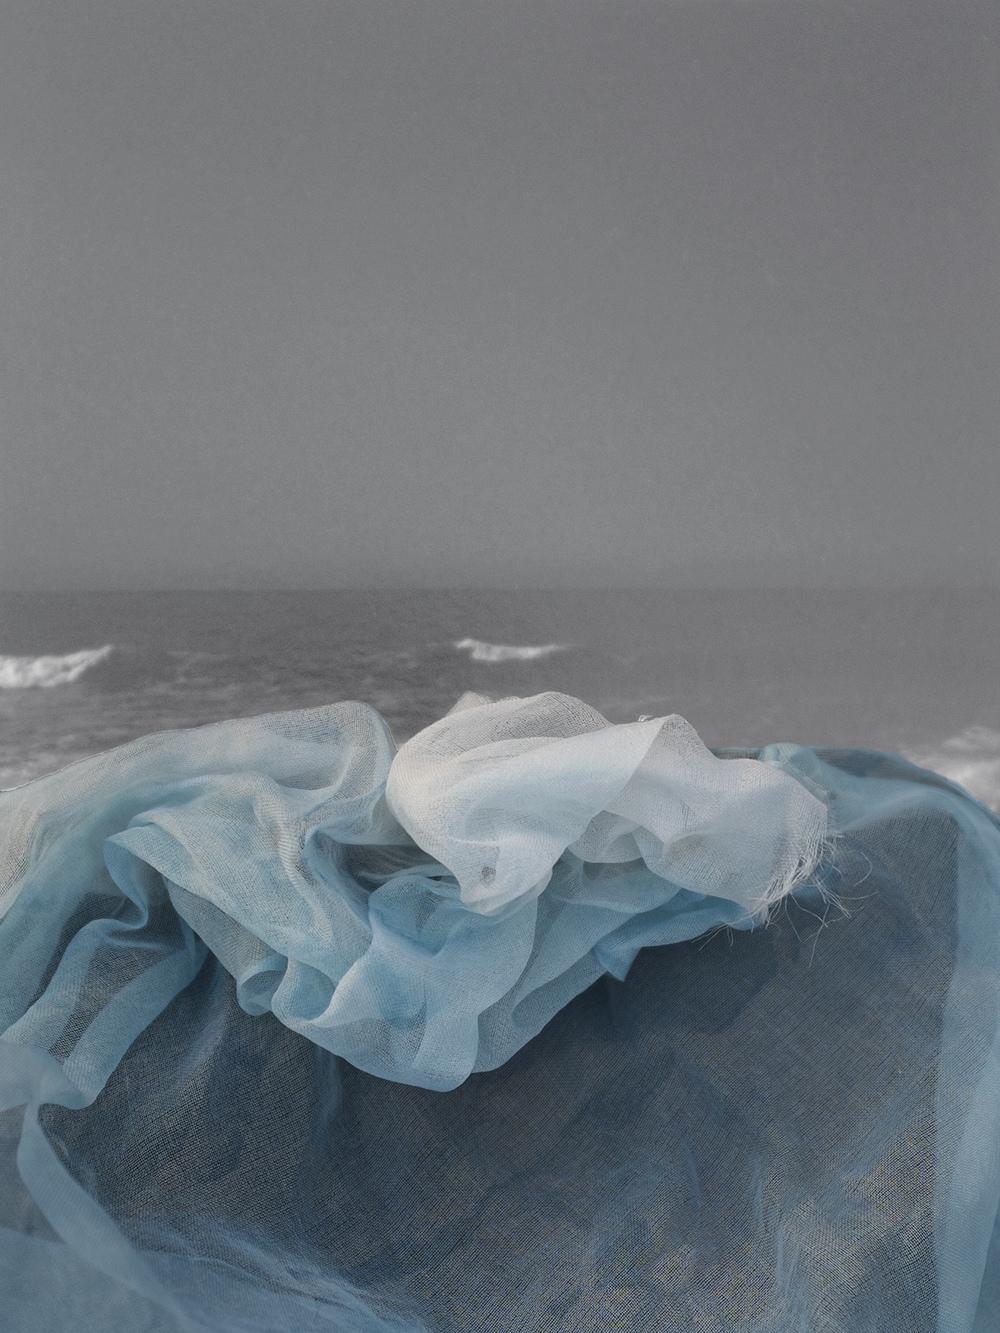 AllisonWatkins_cyanotype_wave_1.jpg